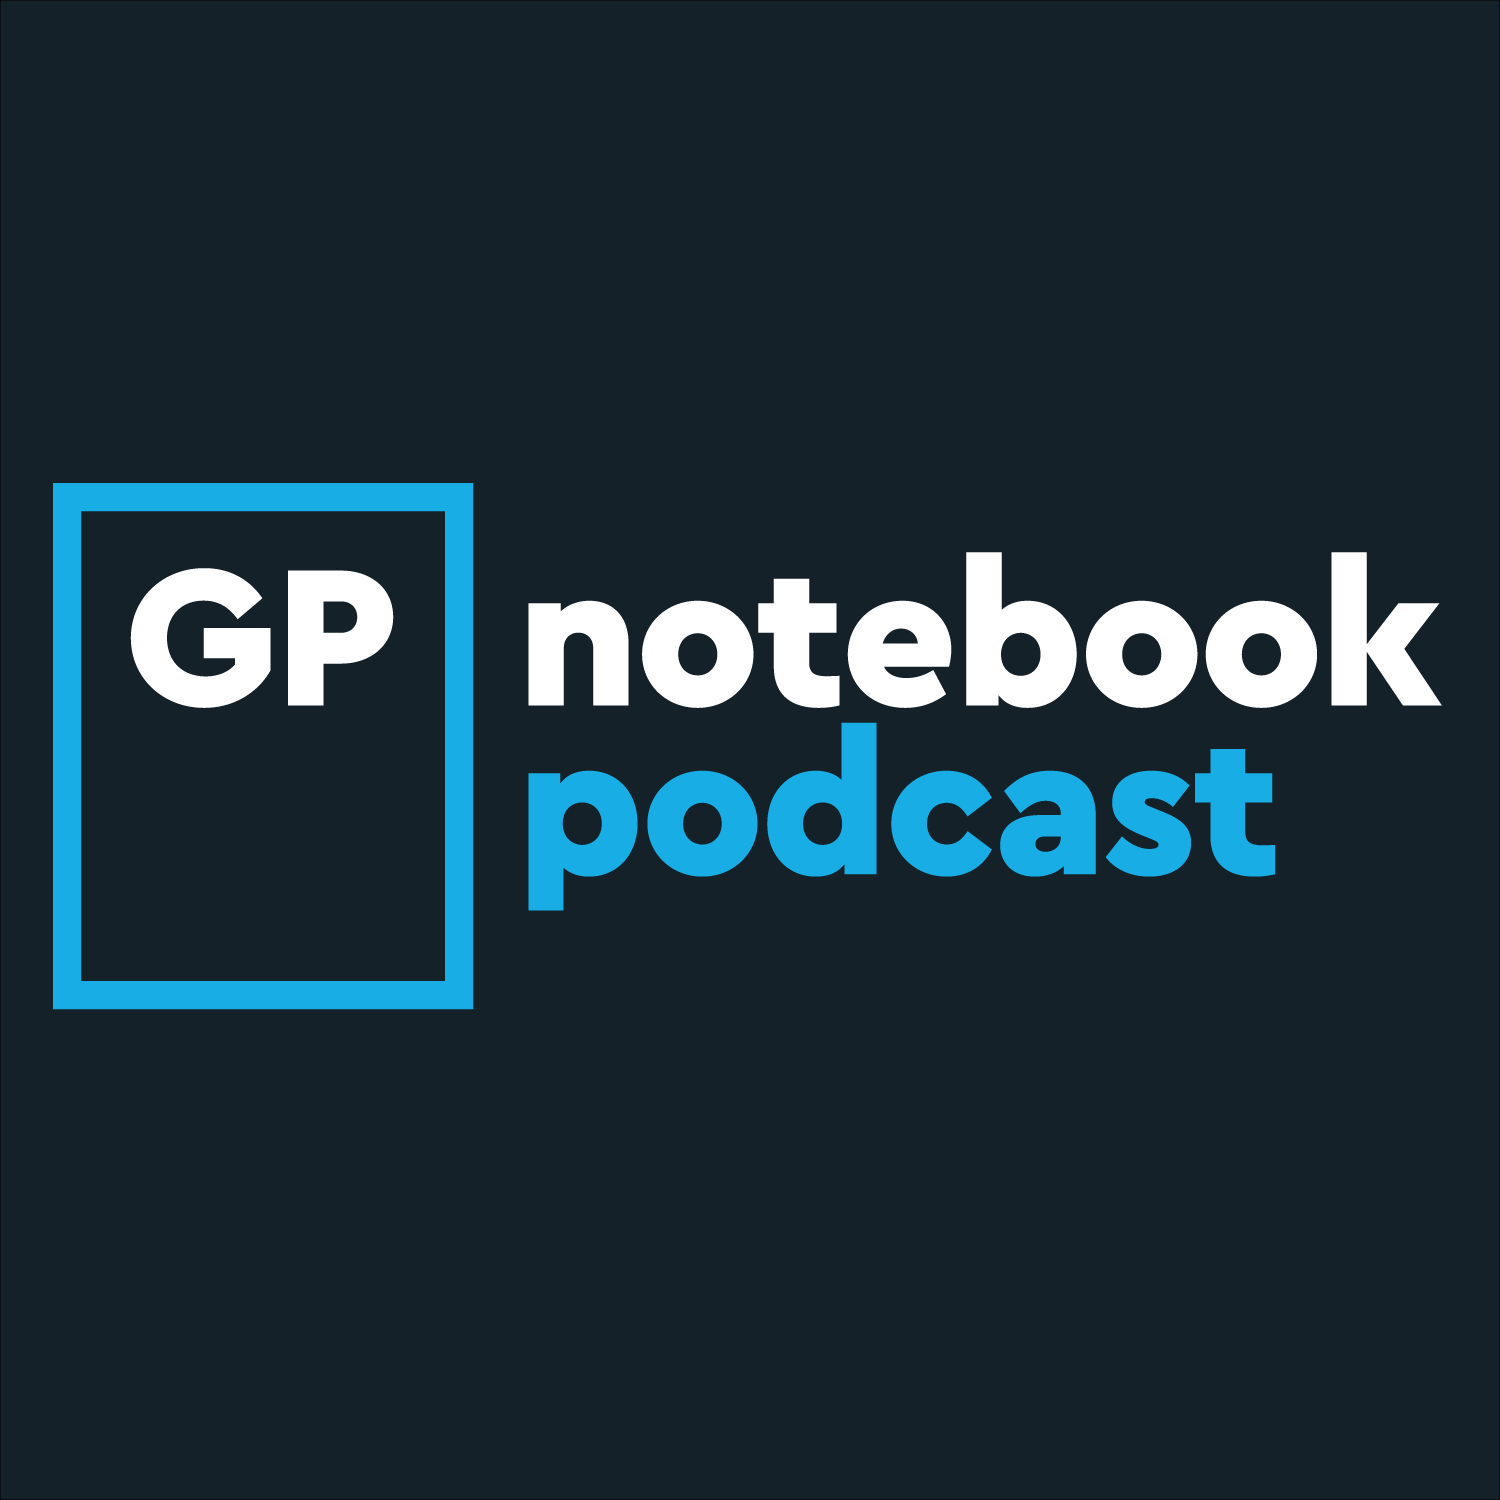 GPnotebook Podcast